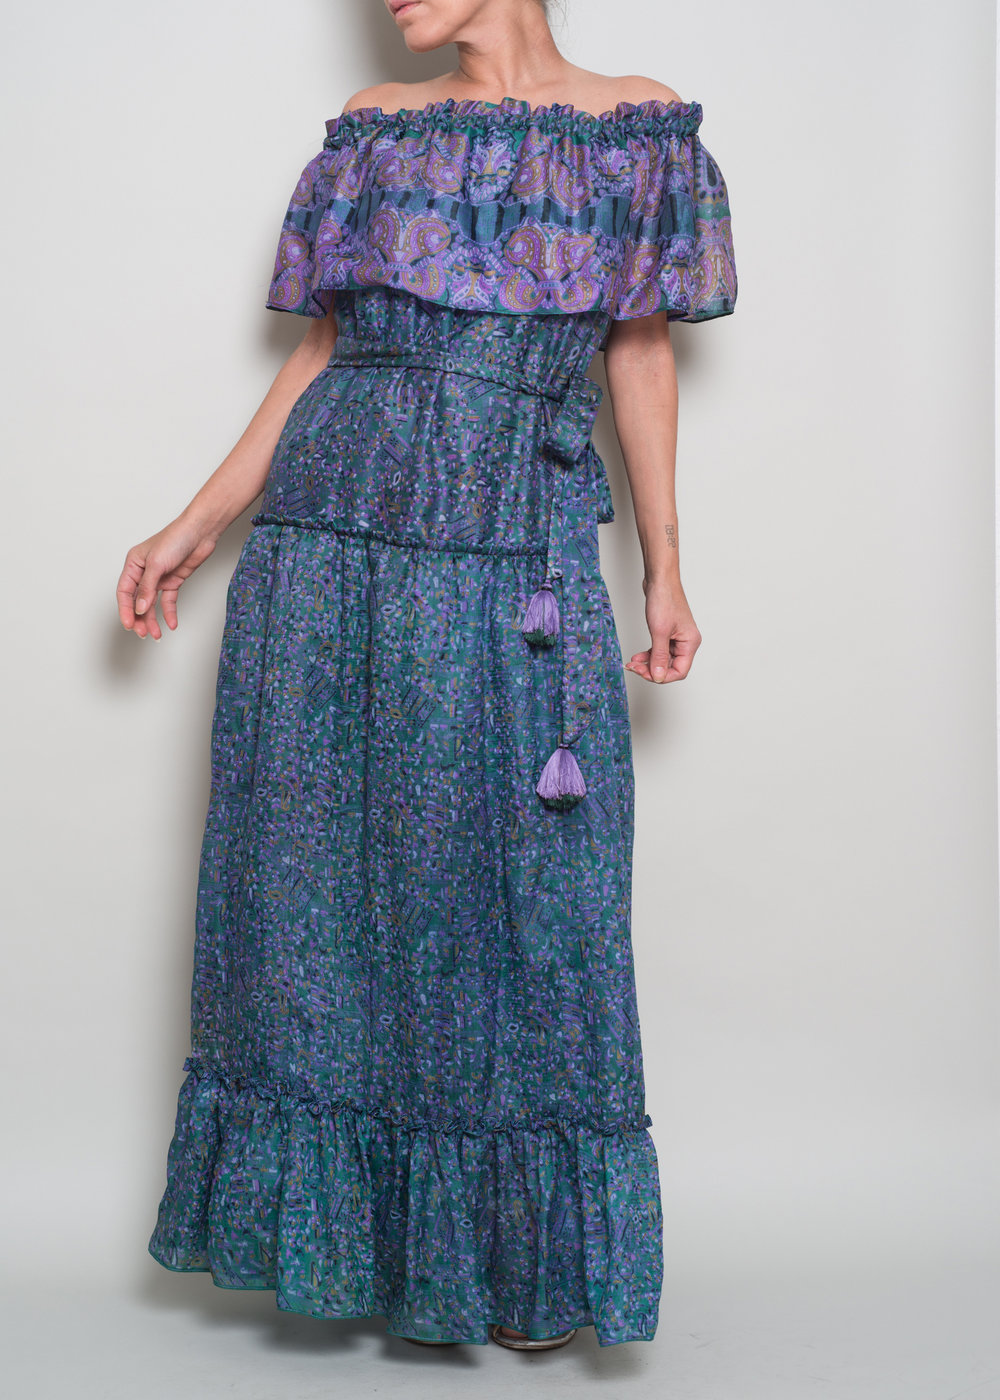 SERENA Tiered Flounce Maxi $415